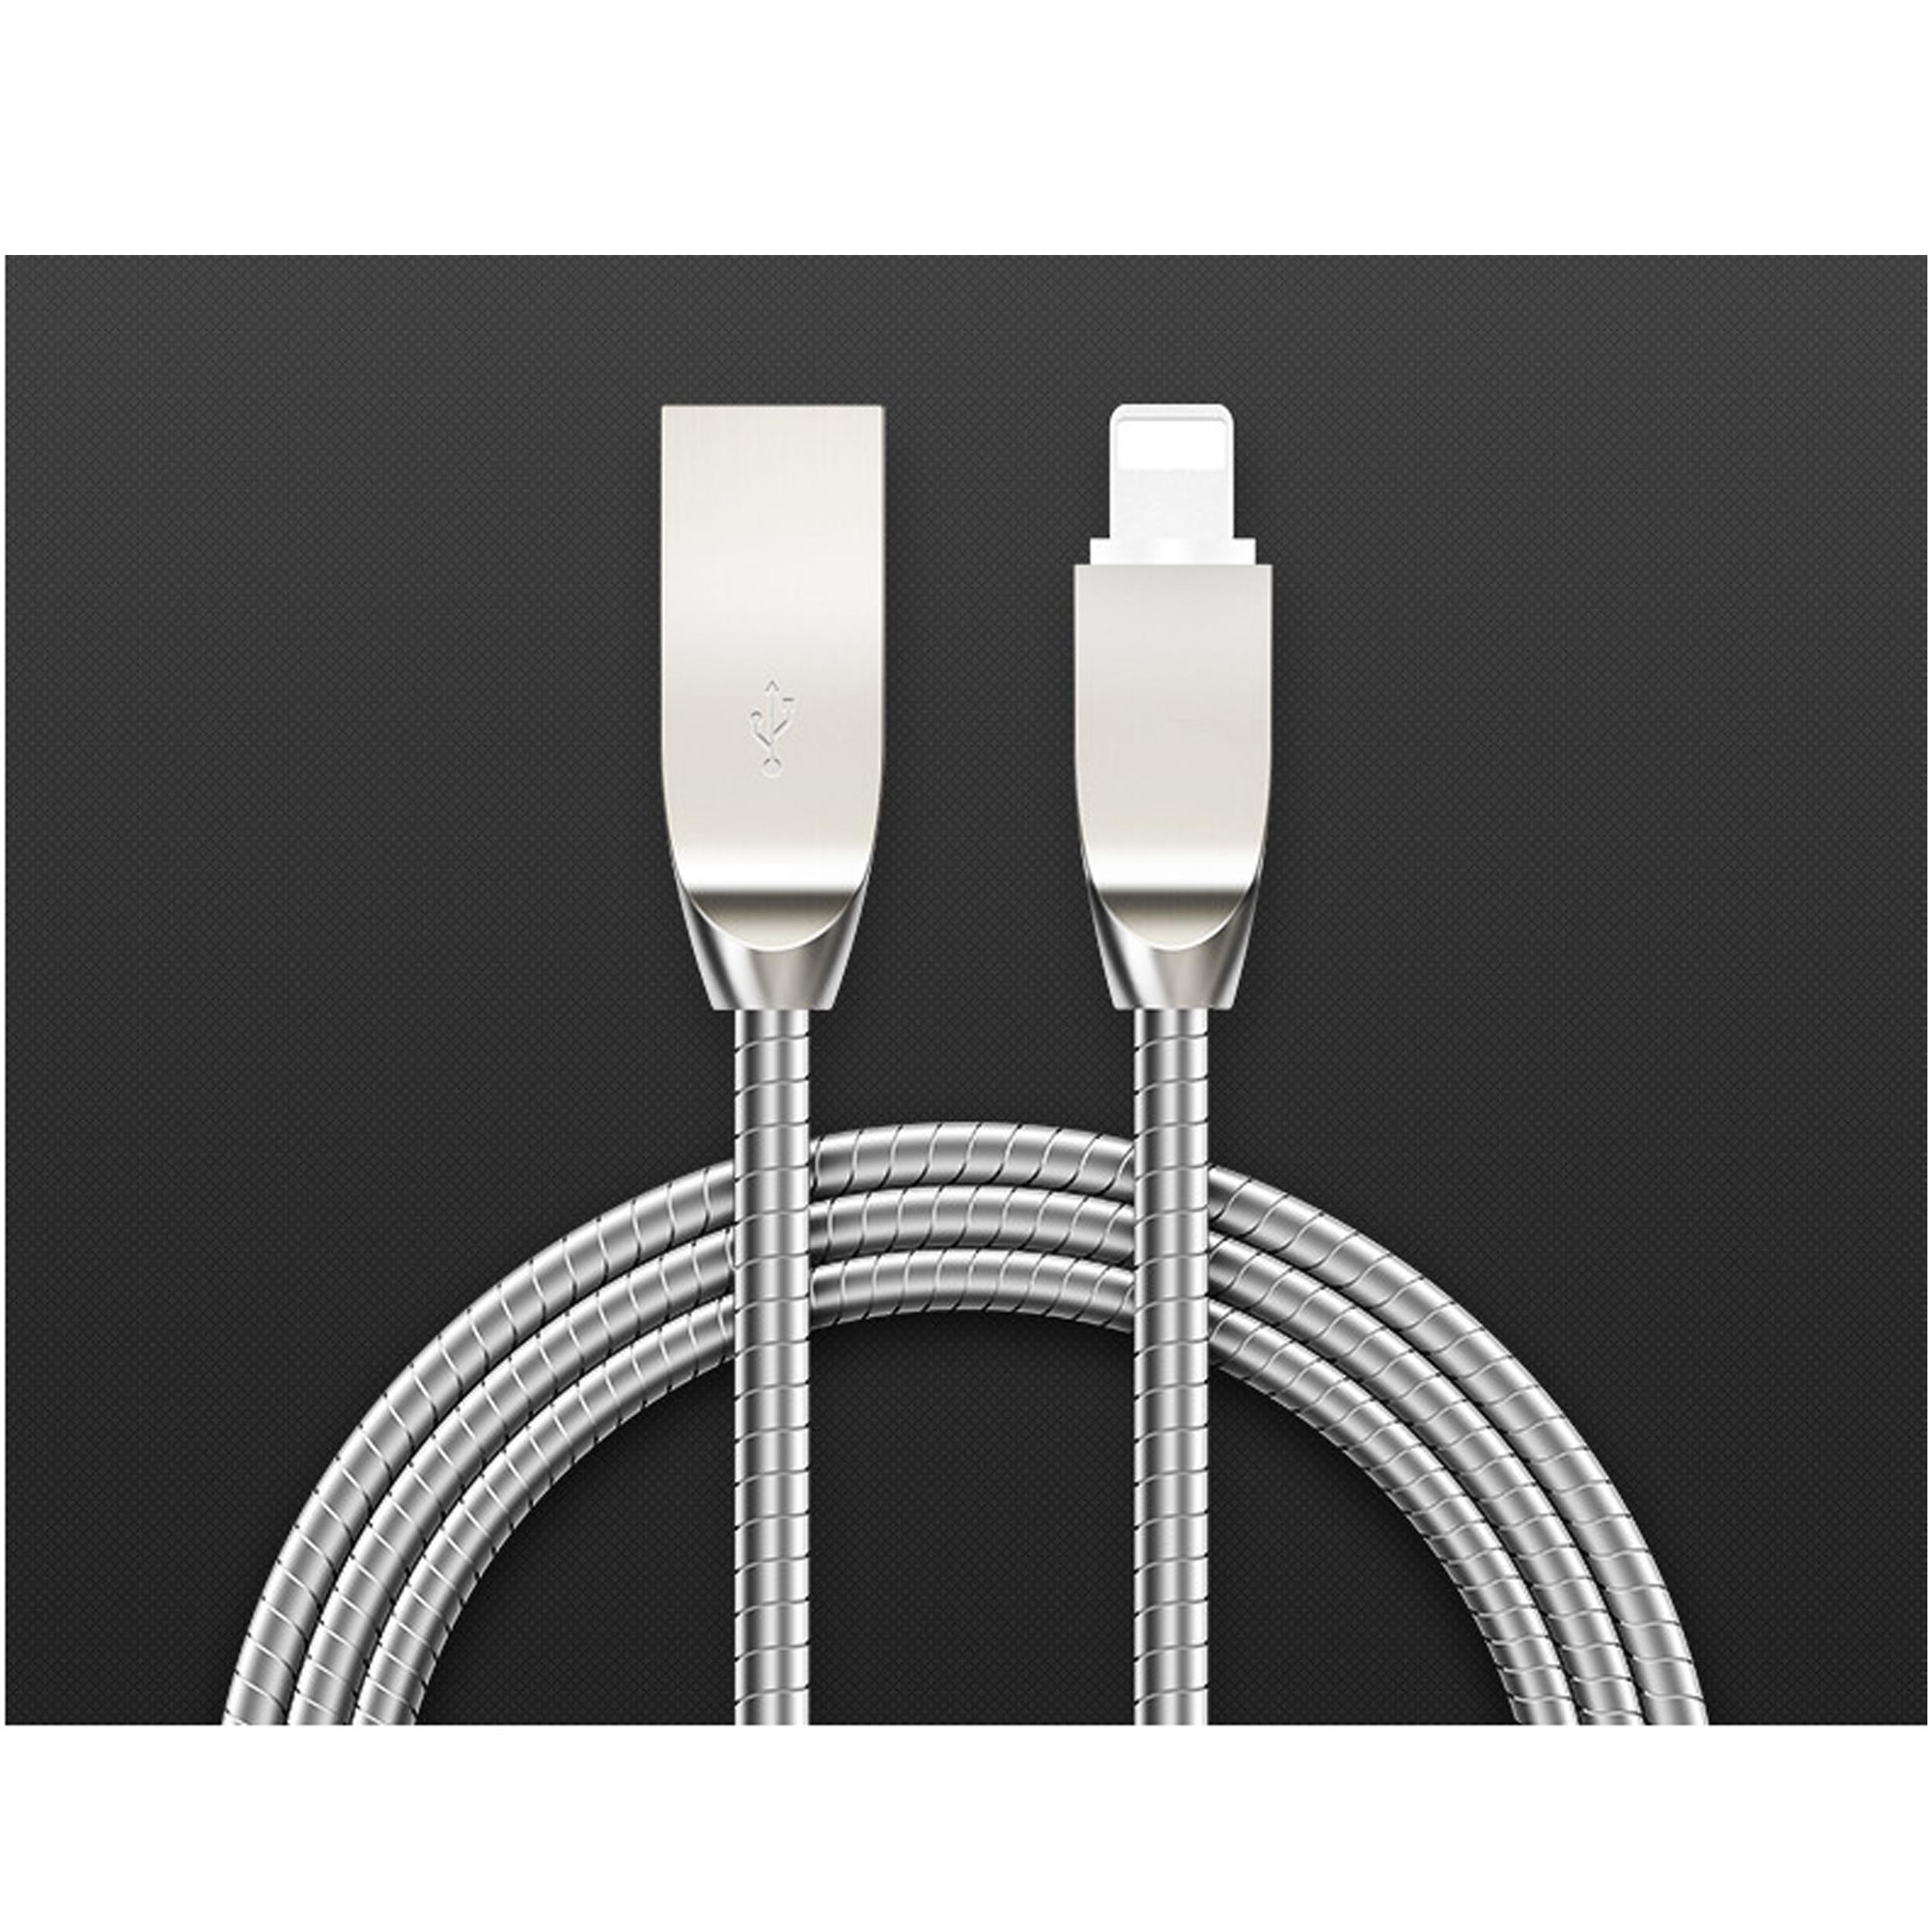 Low Profile Tangle-Free Aluminum Sleeve Lightning Cable for iPhone / iPad / iPod